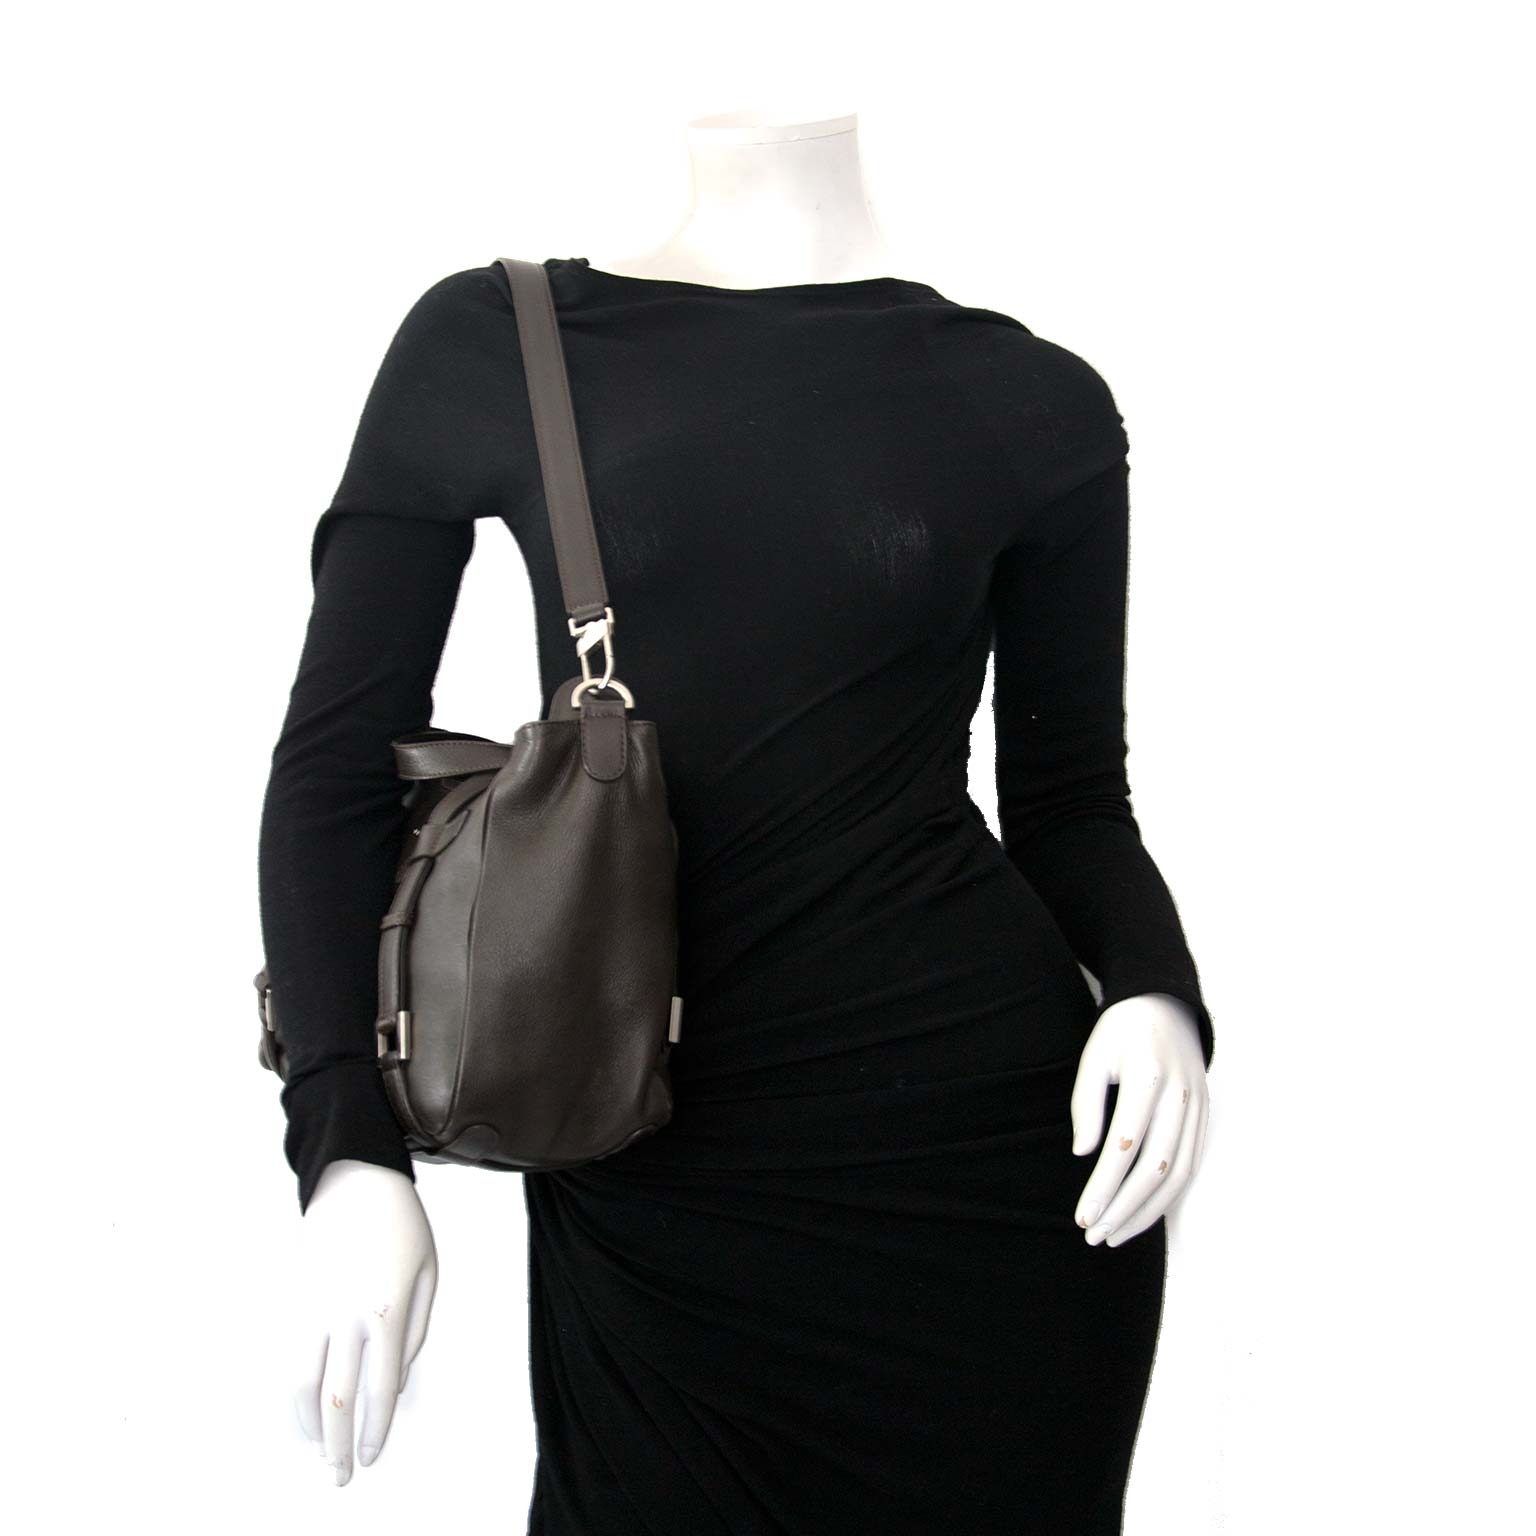 buy secondhand authentic Delvaux Saint Germain Lady Calf Handbag at the right price at Labellov, vintage webshop.